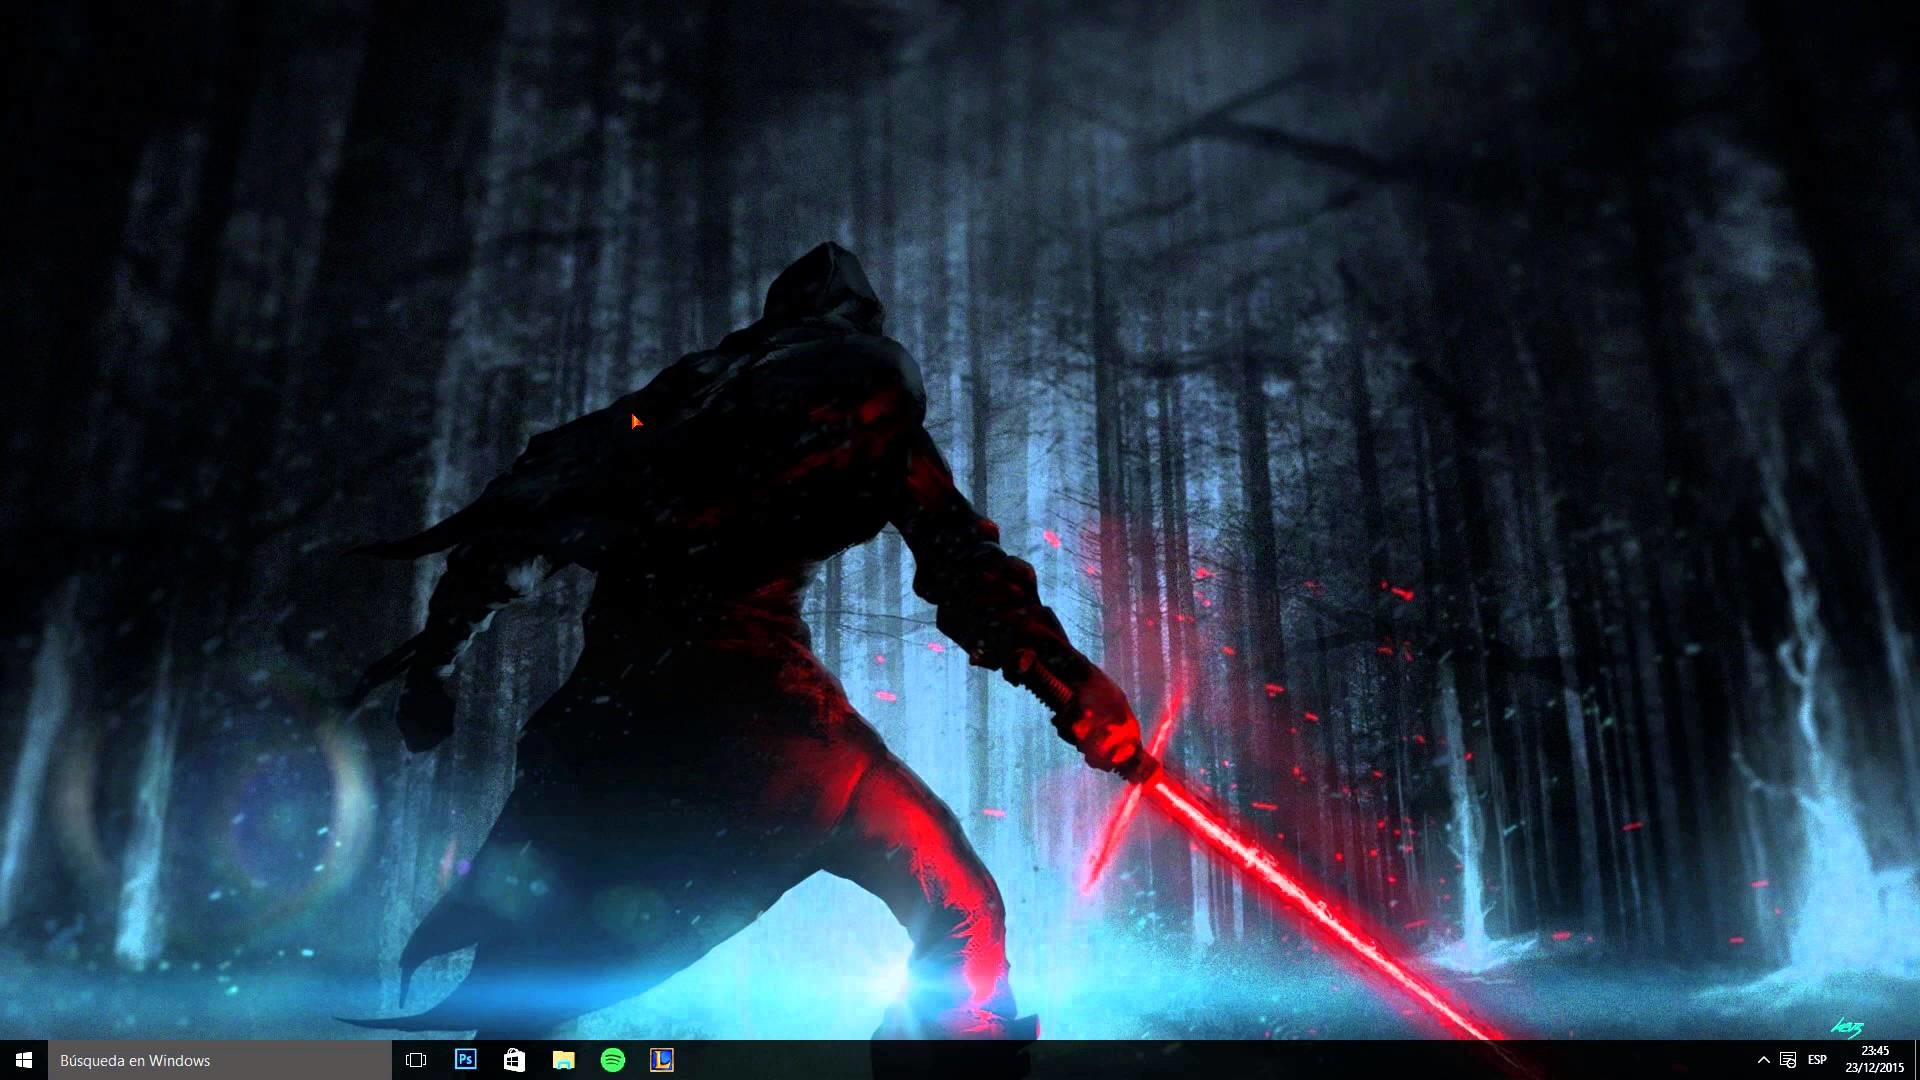 Dual Monitor Animated Wallpaper Animated Wallpaper Windows 10 56 Images